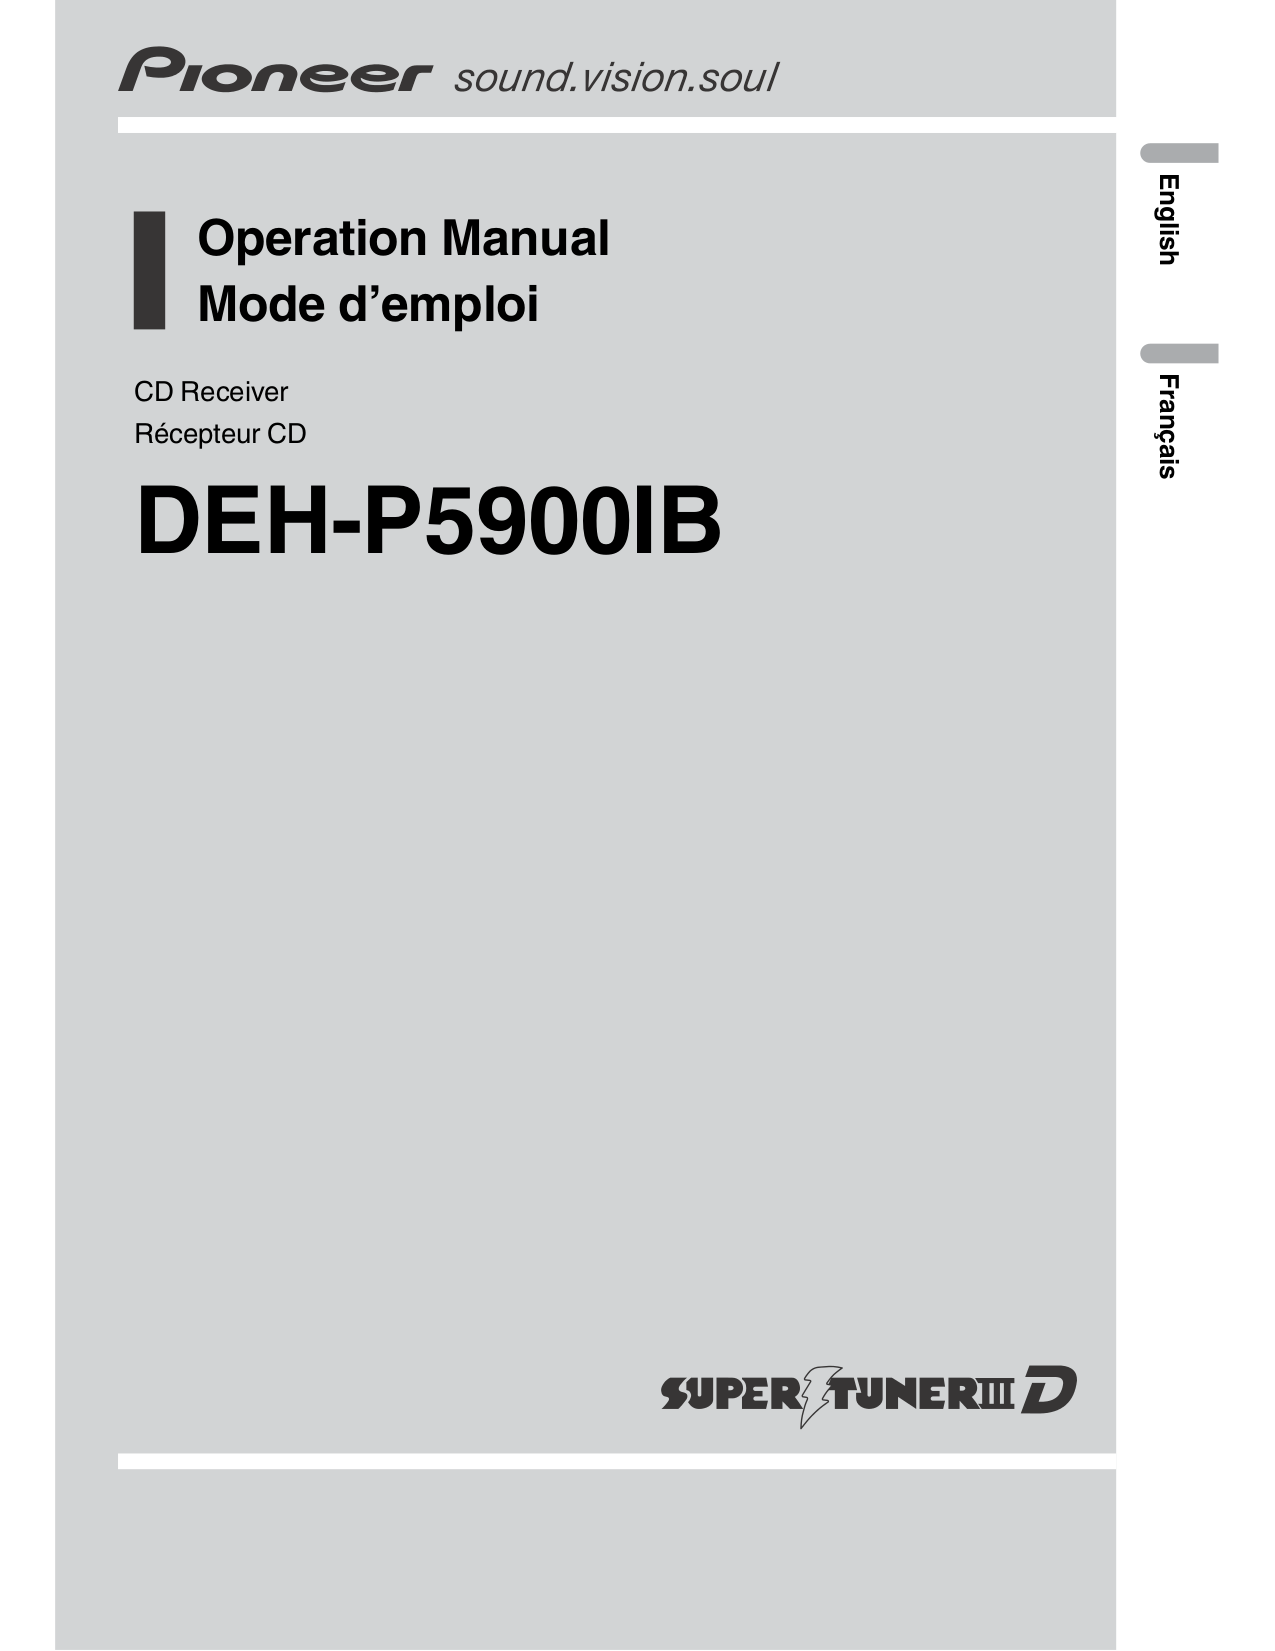 Wiring Diagram Pioneer Deh 17 Trusted Diagrams 1100 Manual User Guide That Easy To Read U2022